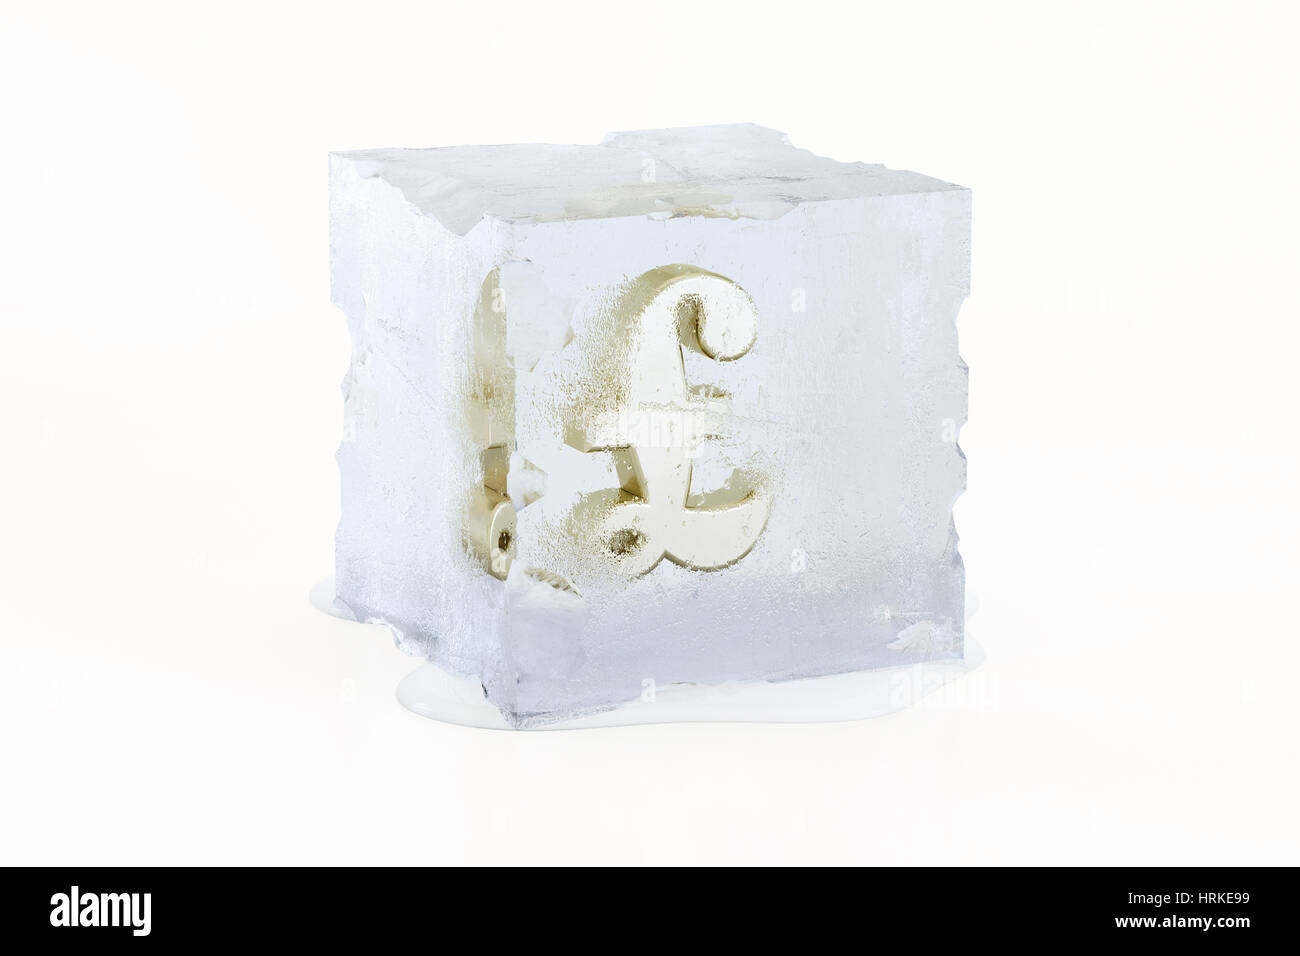 Golden British Pound Sterling concept symbol frozen in a slowly melting ice cube isolated on a white background - Stock Image